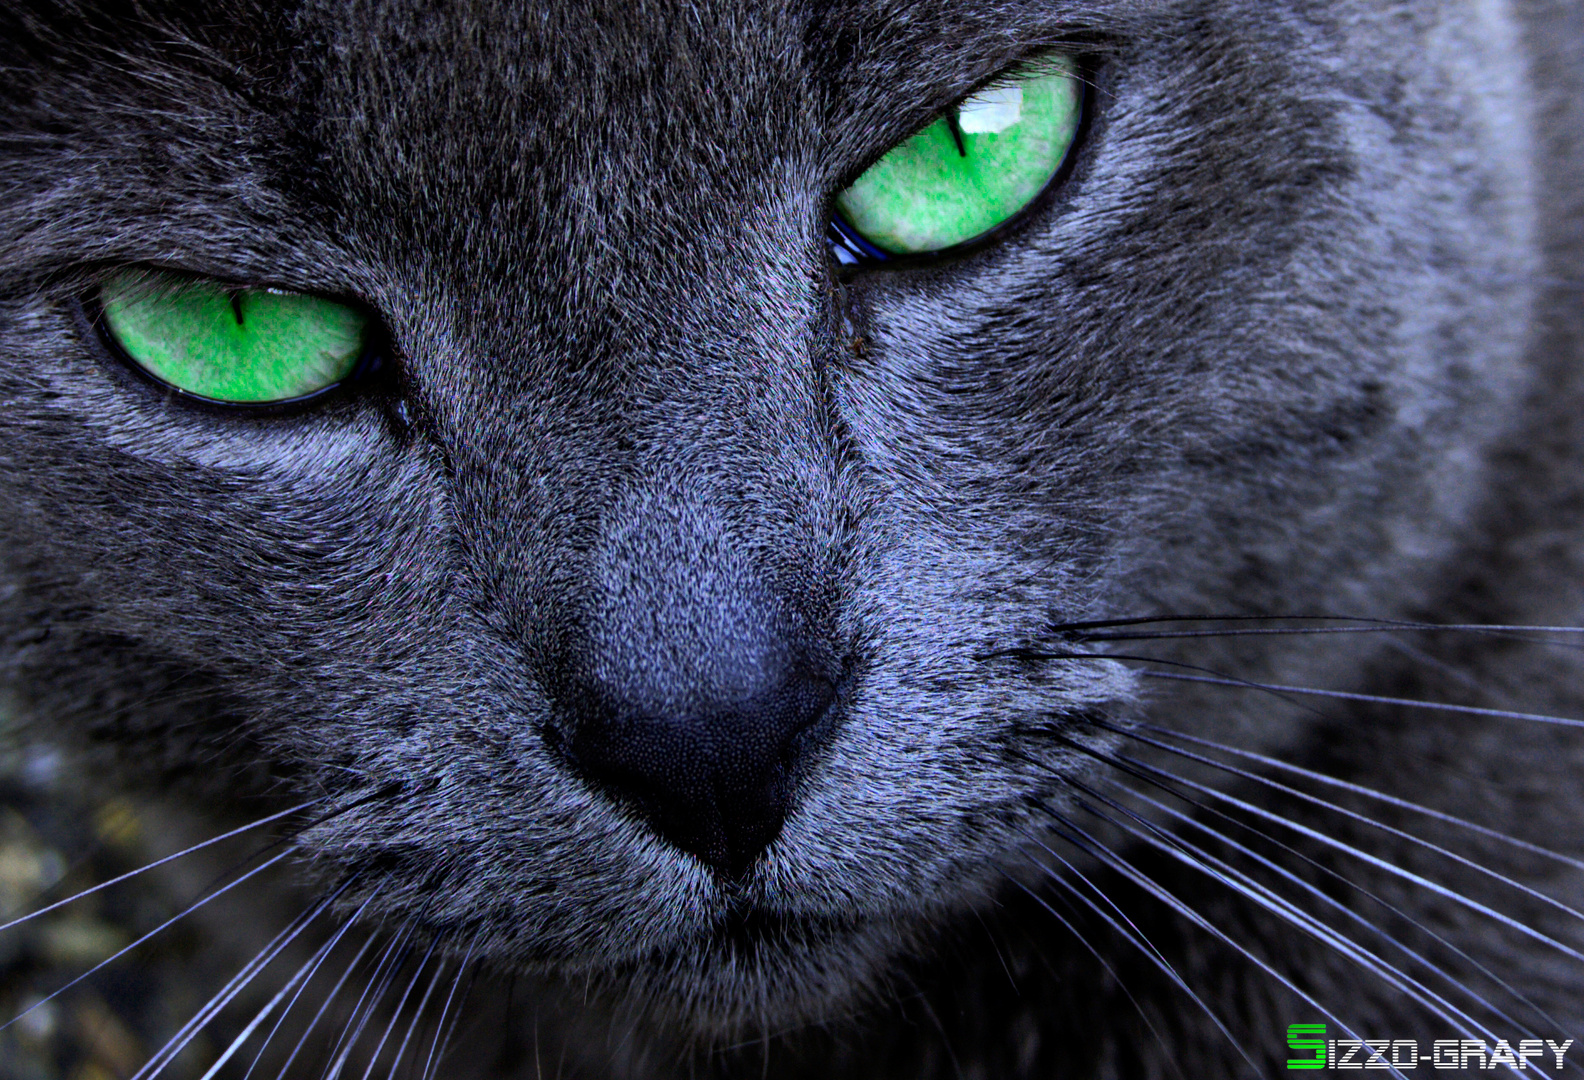 The beautiful cat with green eyes